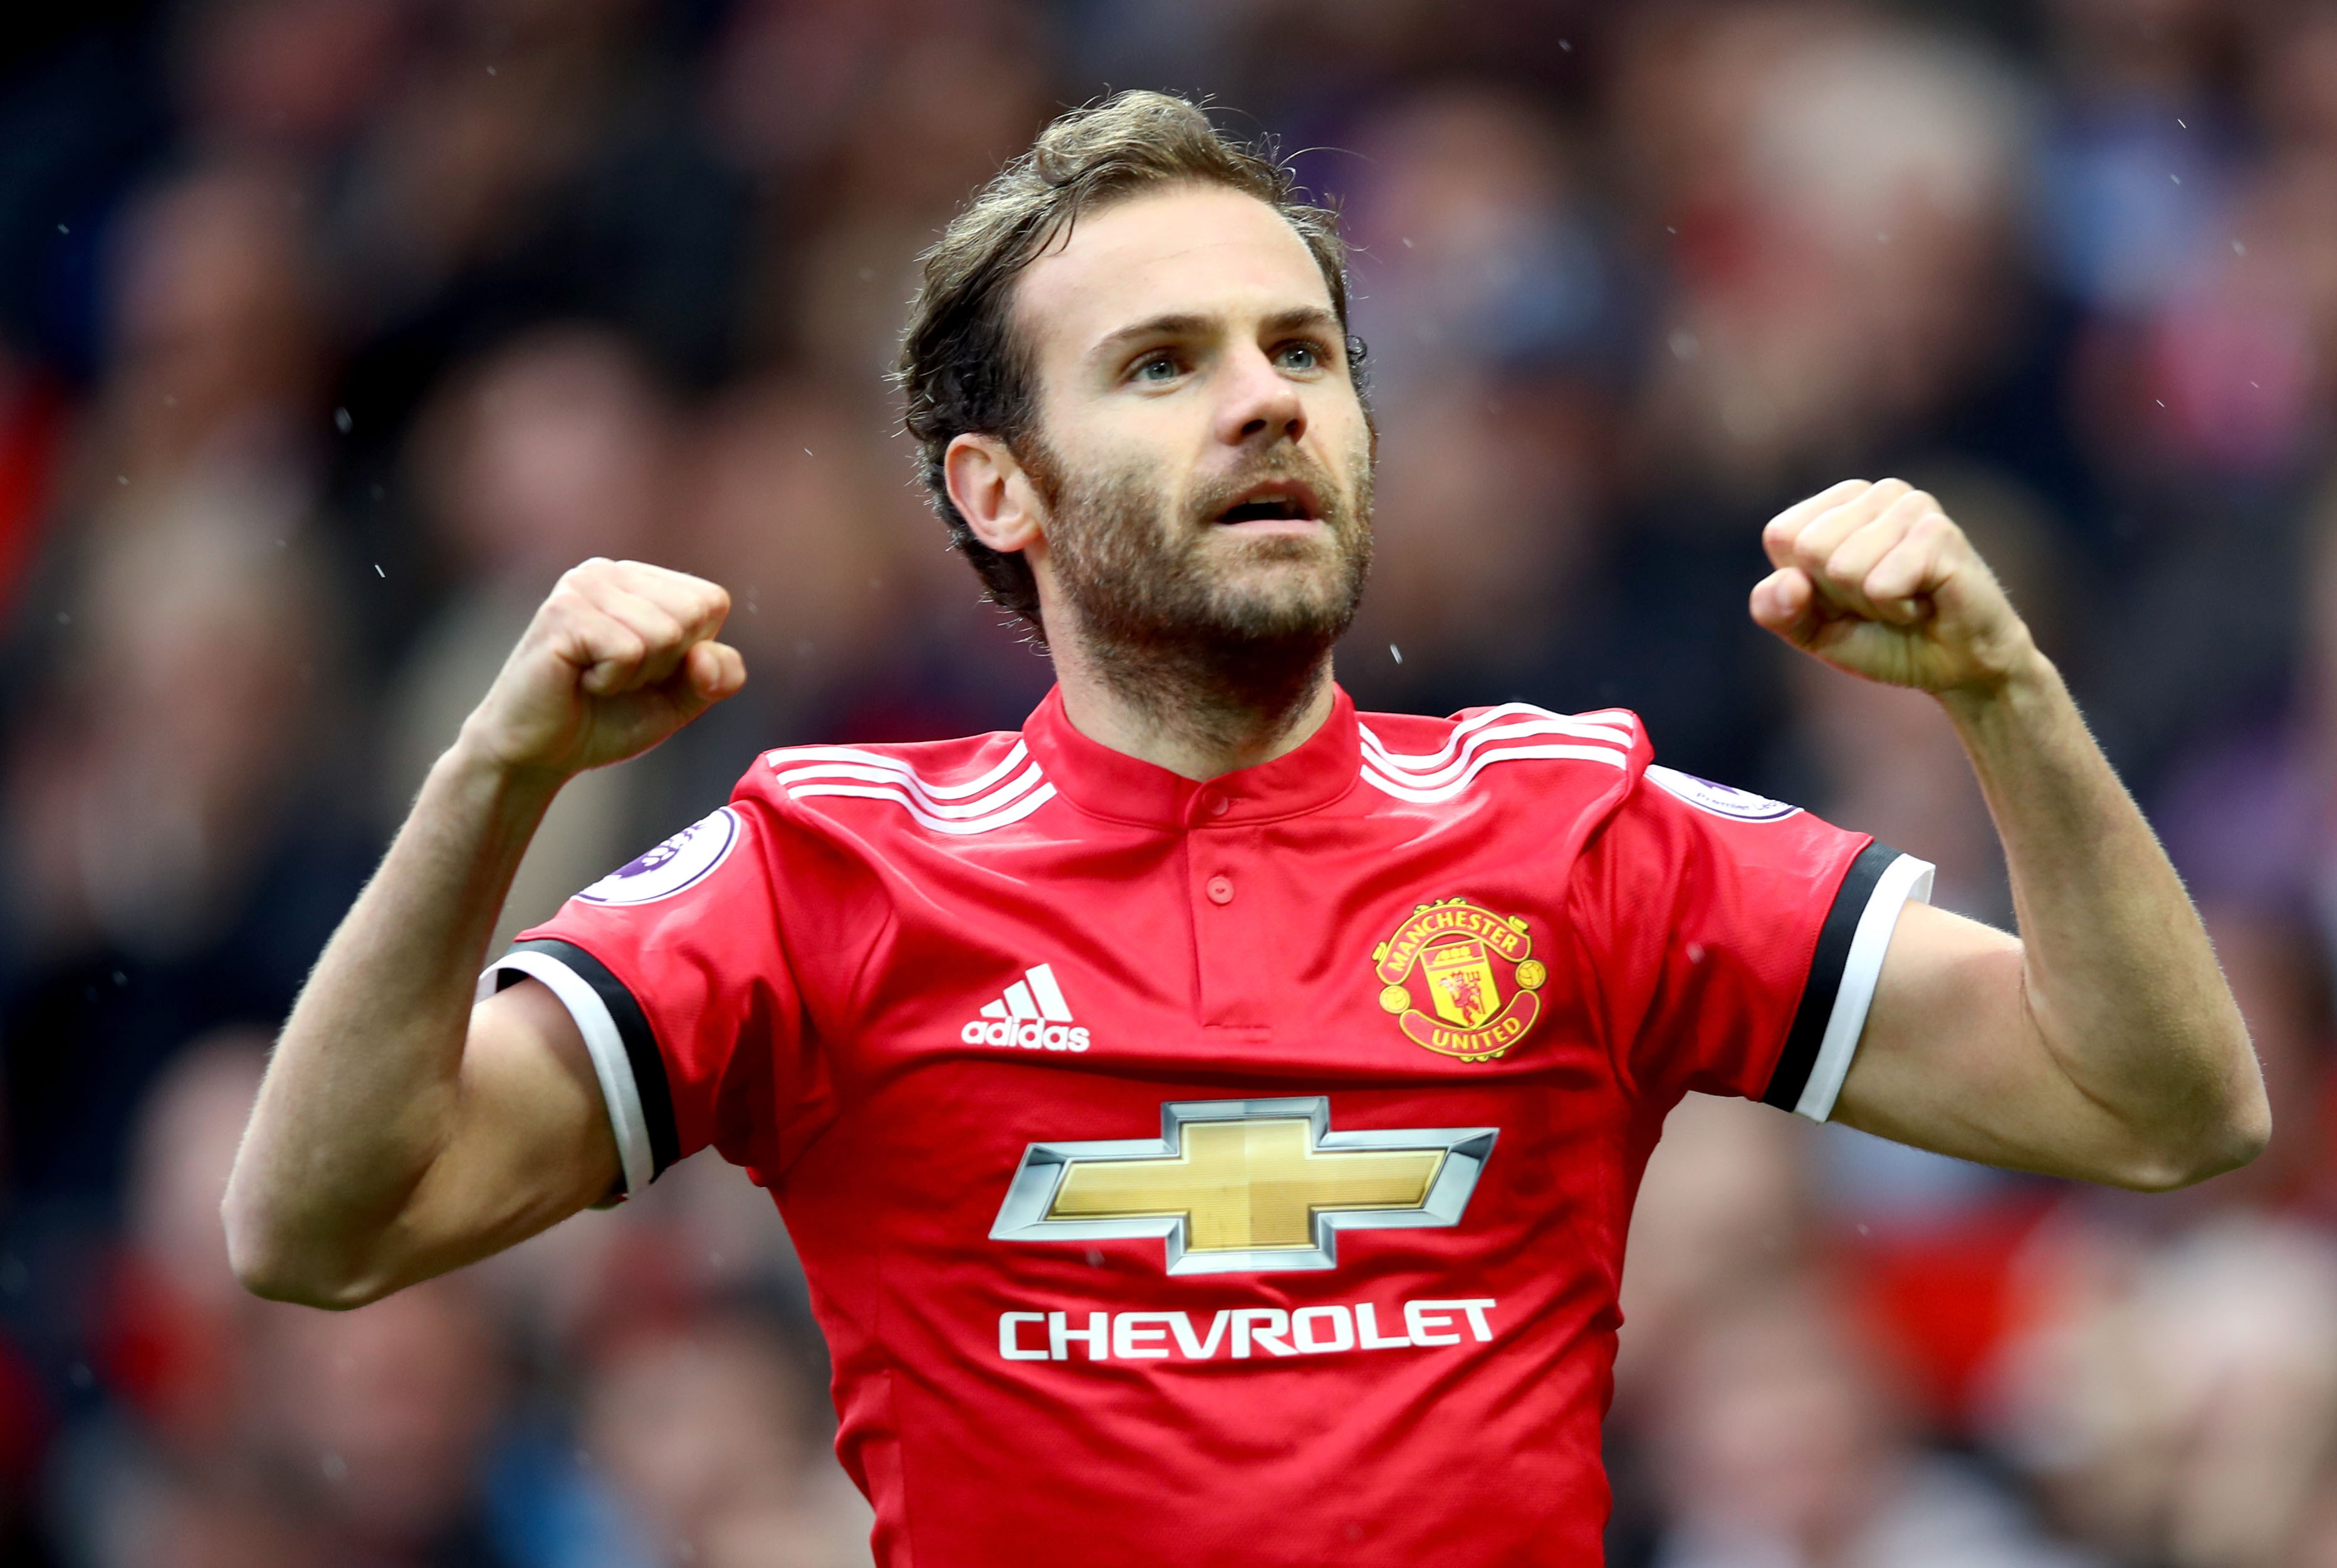 Juan Mata: Why Manchester United Need To Keep Hold Of The